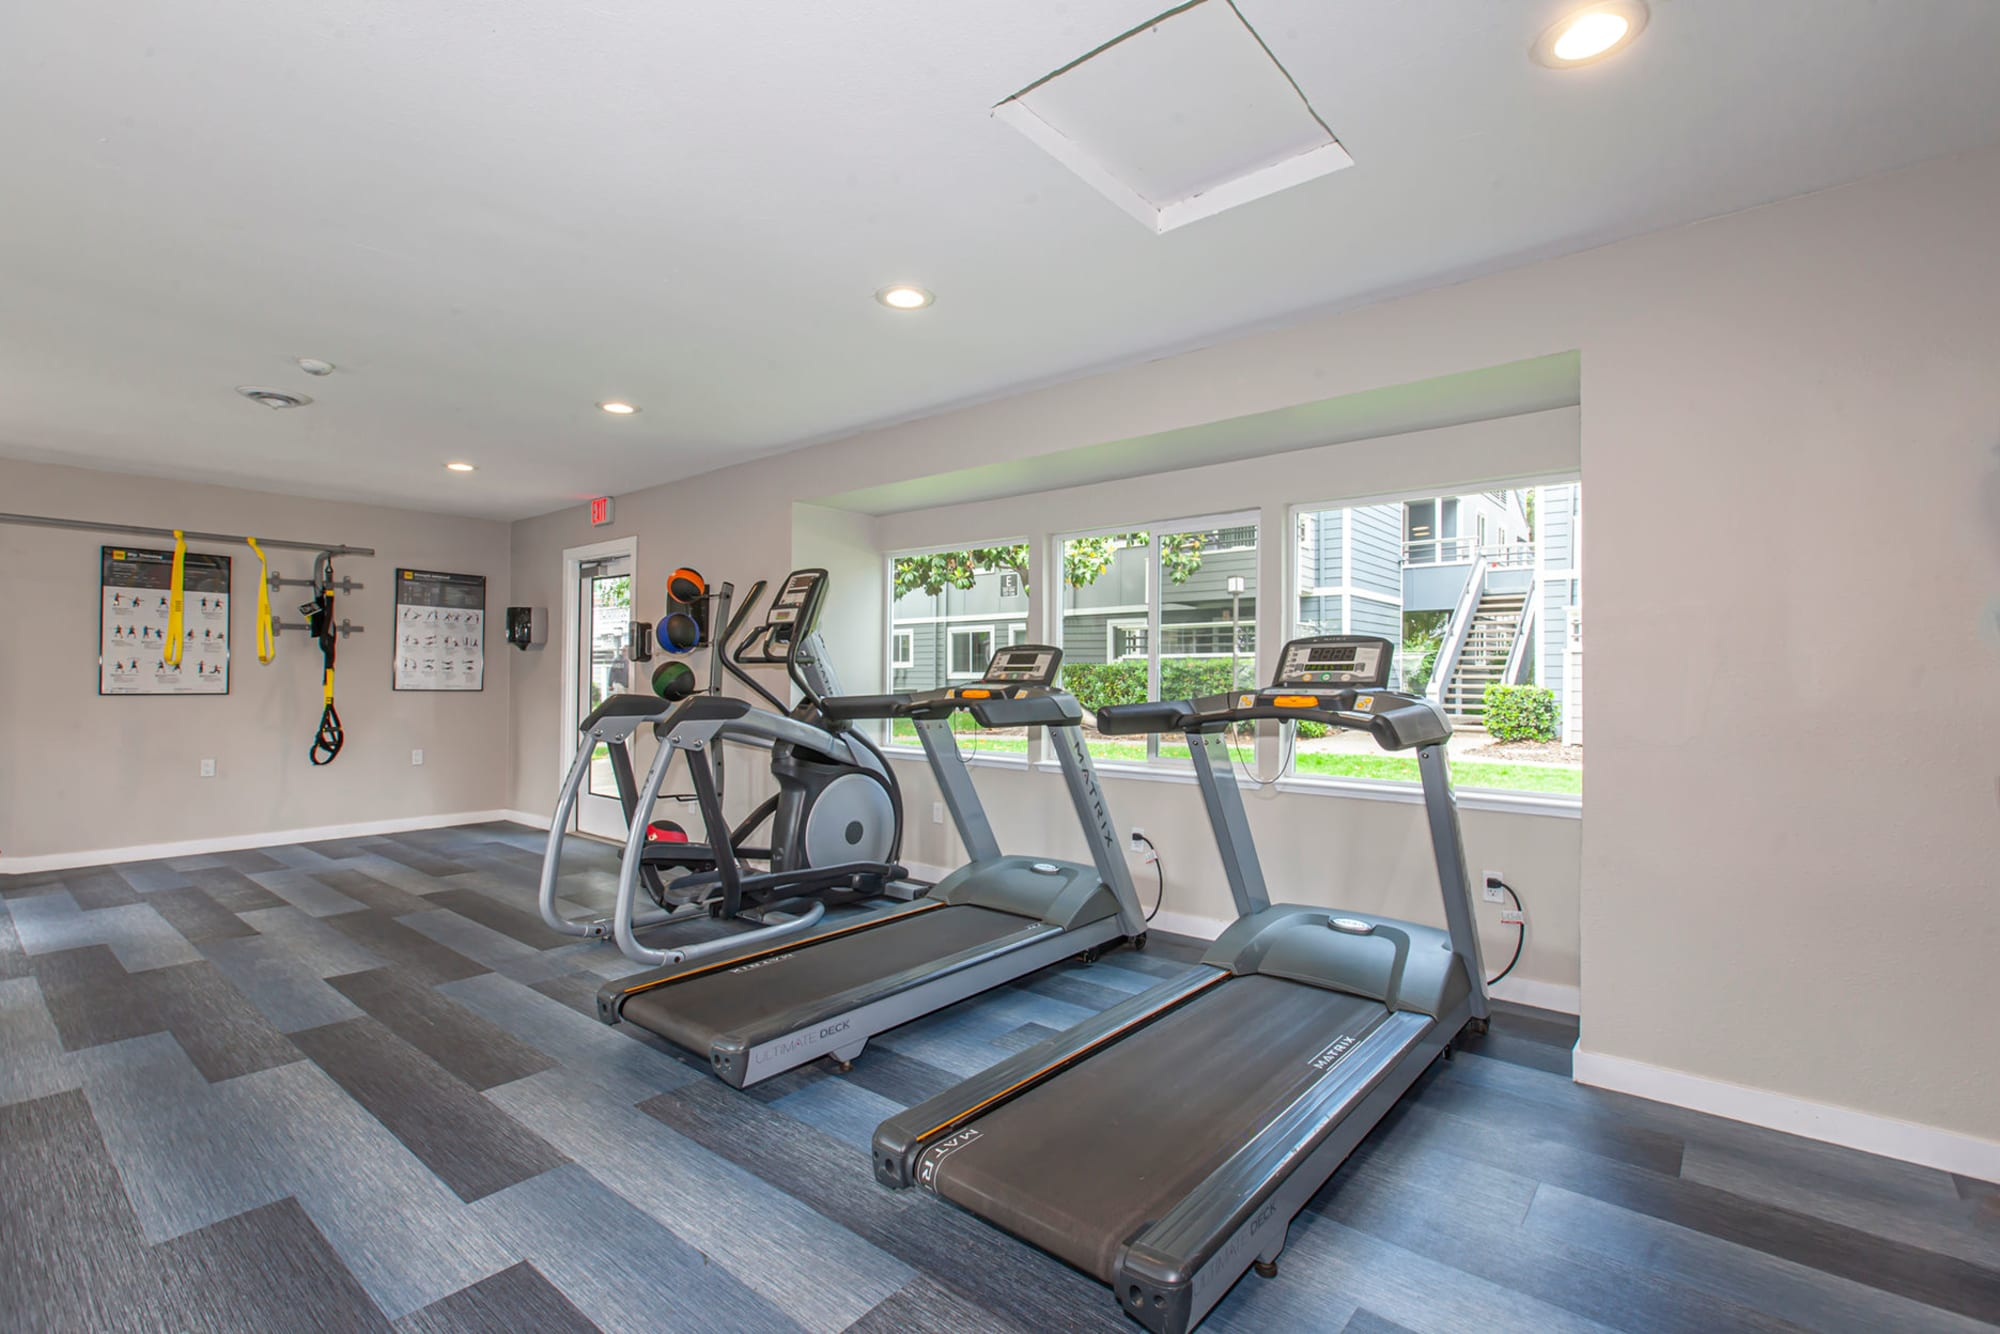 Exercise machines in the recently renovated fitness center at Bennington Apartments in Fairfield, California